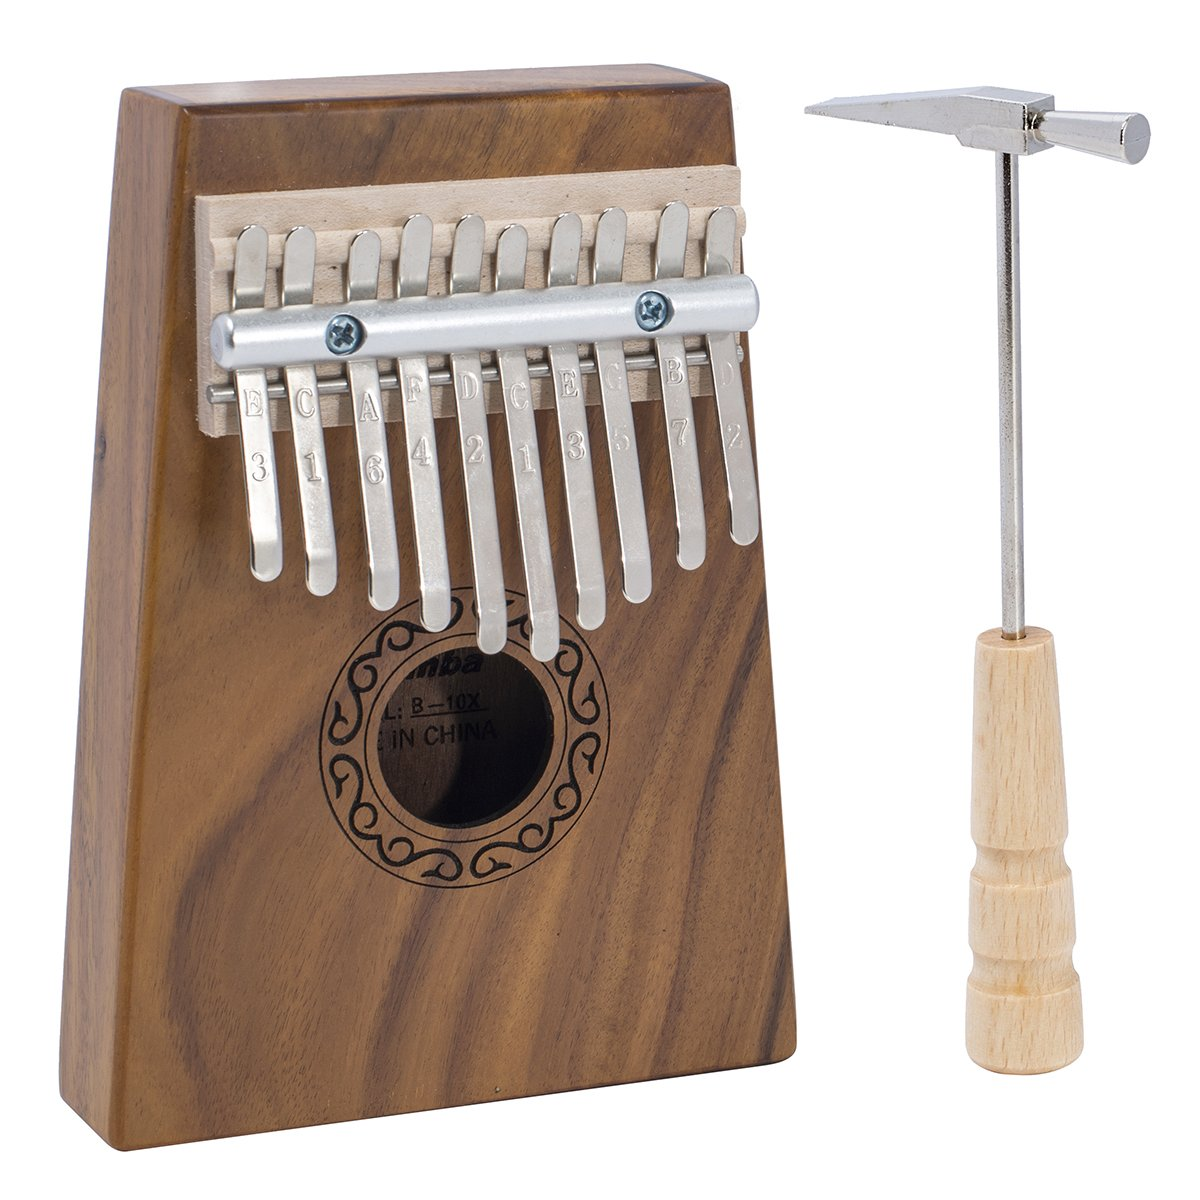 Deekec 10 key Kalimba Thumb Piano with Instruction and Tuner Hammer, Portable Acacia Body ¡­ Deekec International KLB013-K